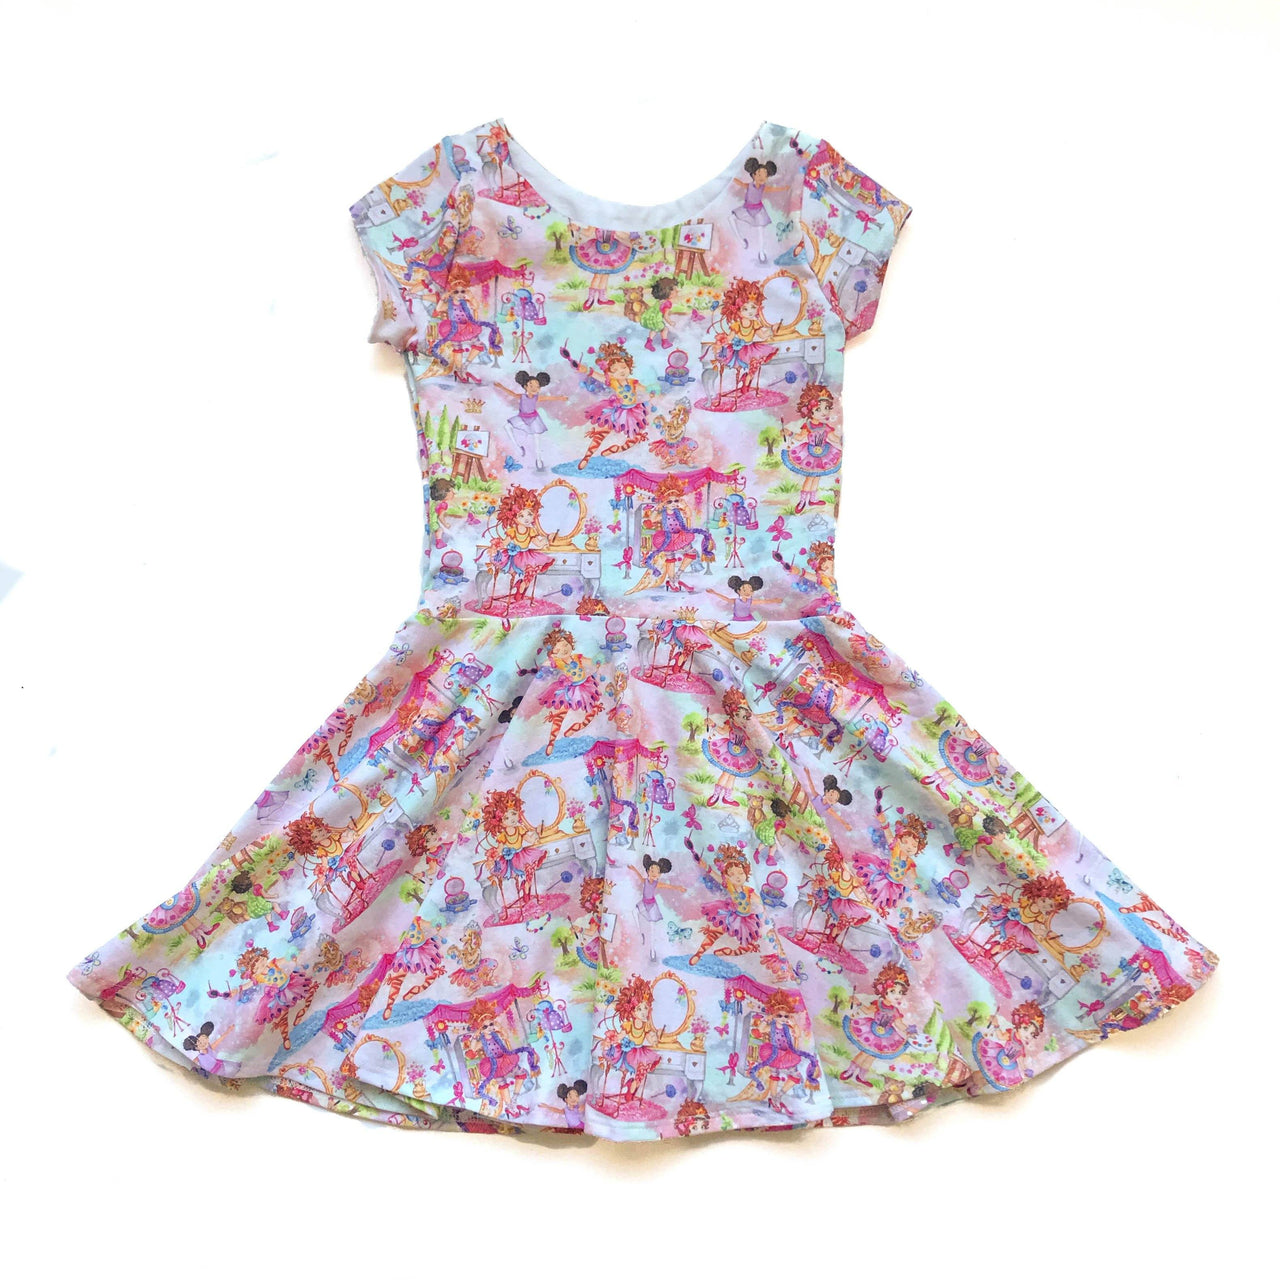 Fancy Nancy Twirl Dress - Elizabeth's Closet